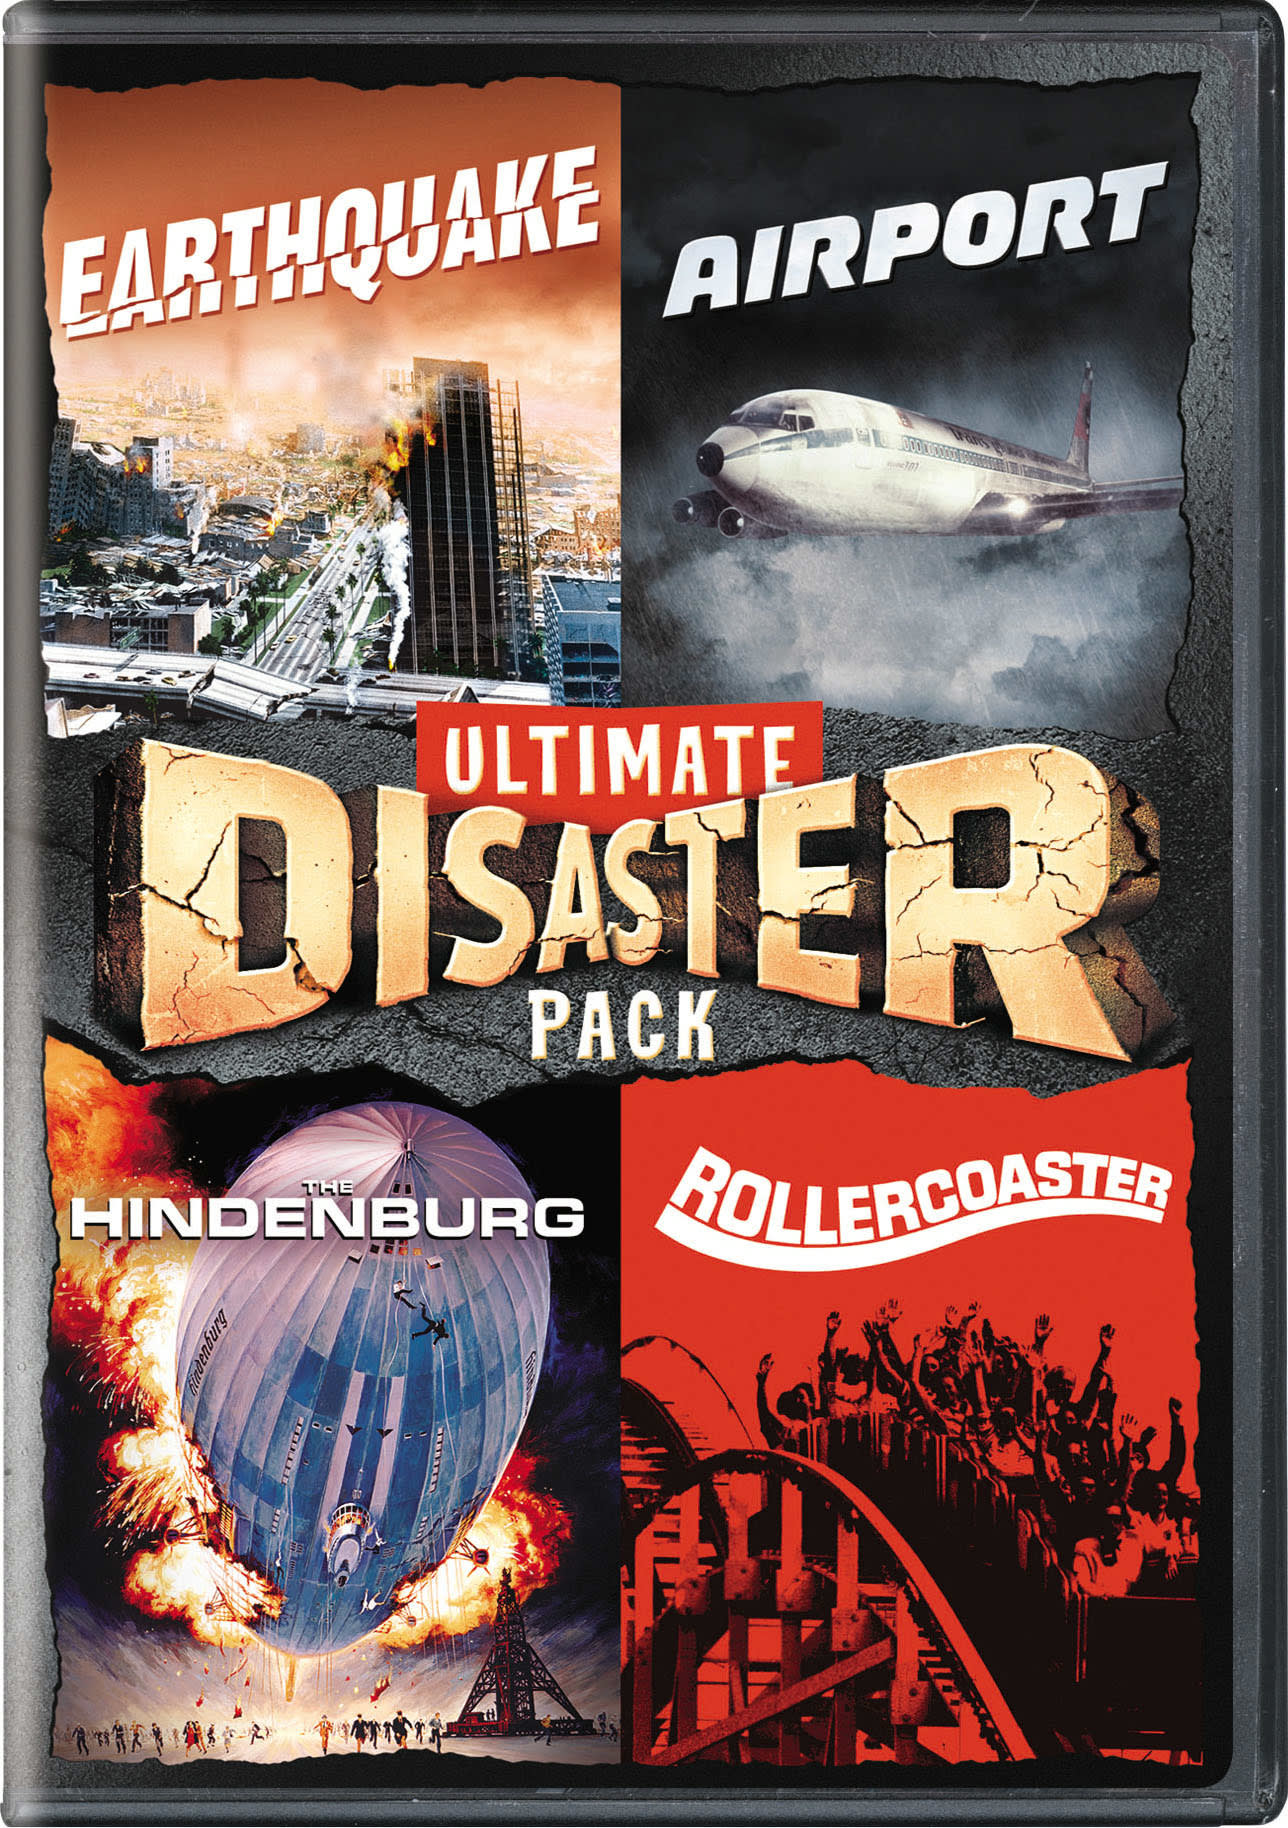 Earthquake/Airport/The Hindenburg/Rollercoaster [DVD]